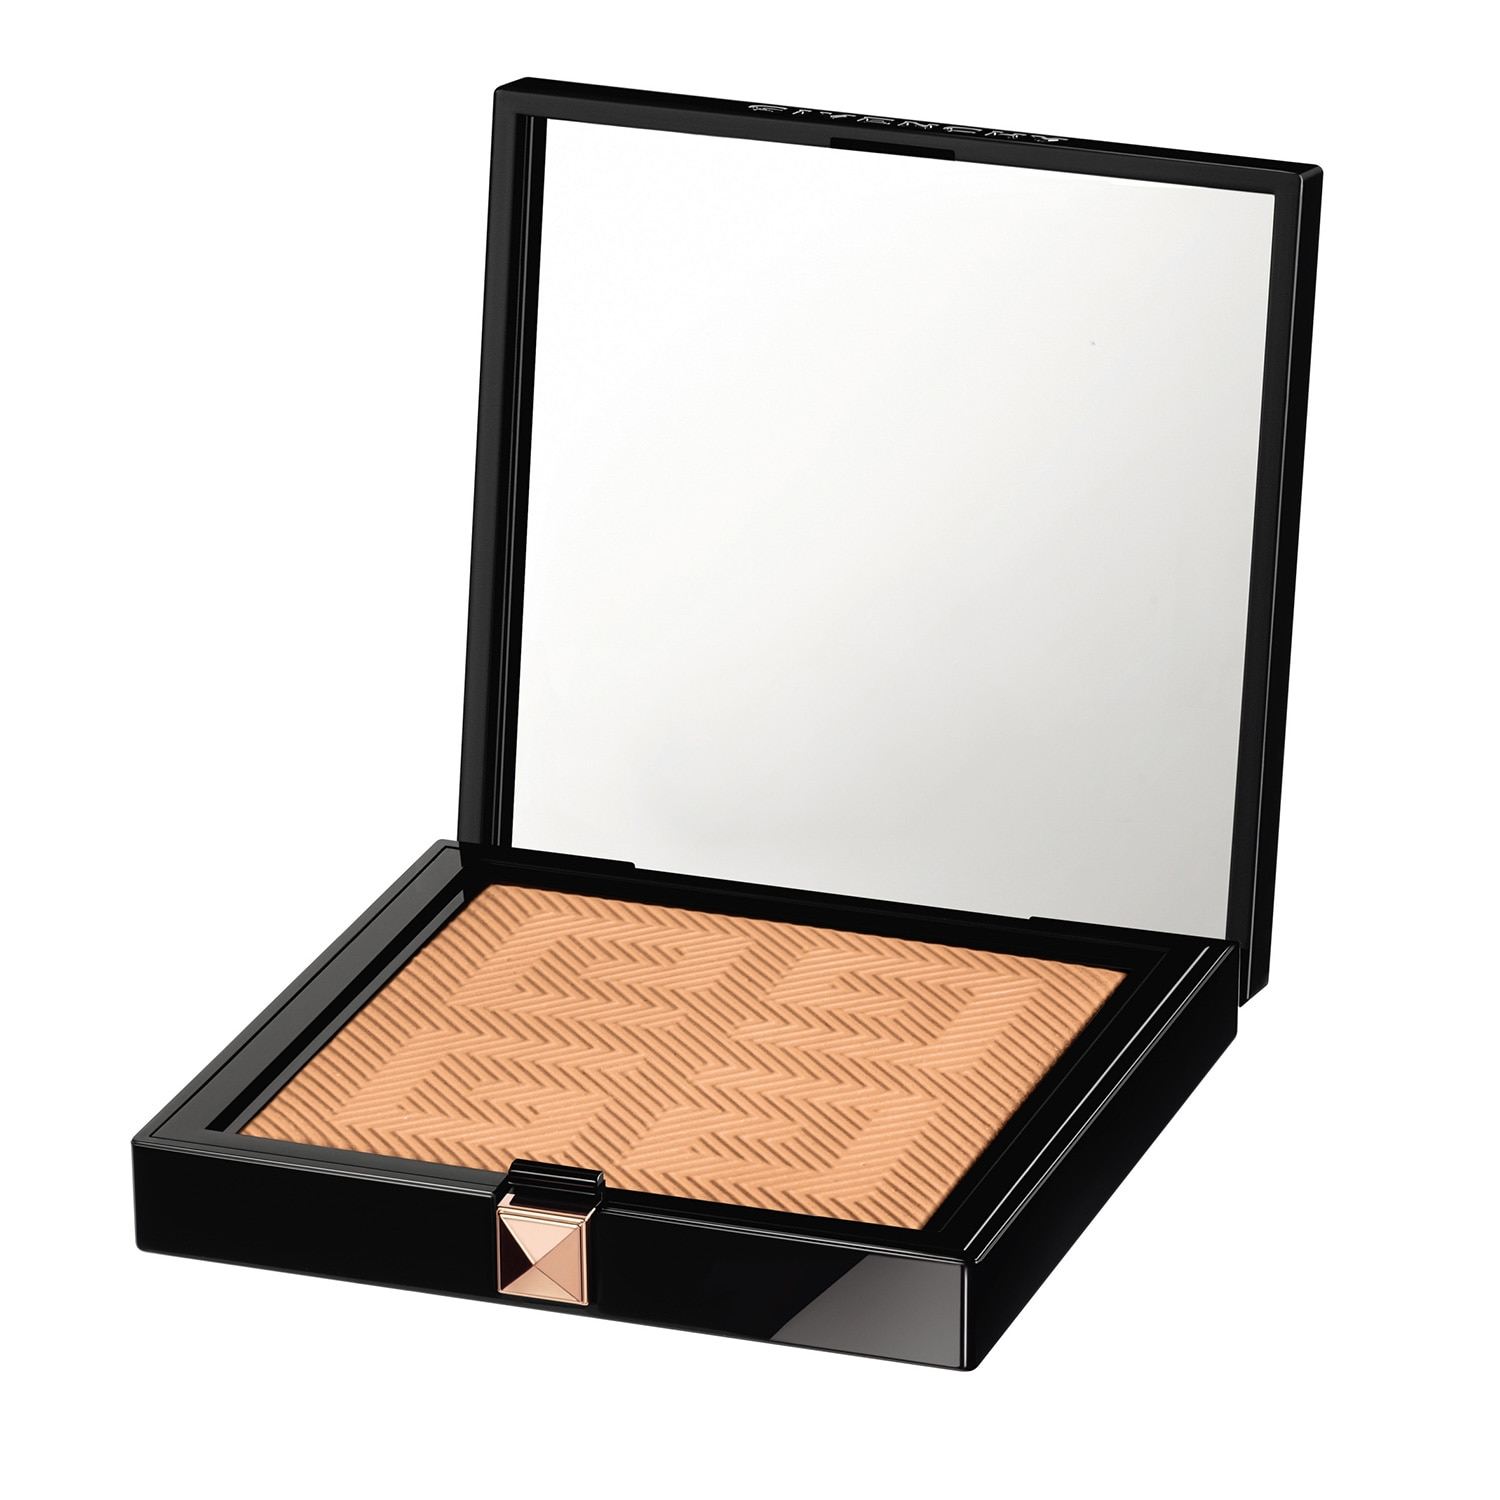 TEINT COUTURE HEALTHY GLOW POWDER (BRONCEADOR EN POLVO DE ACABADO NATURAL)